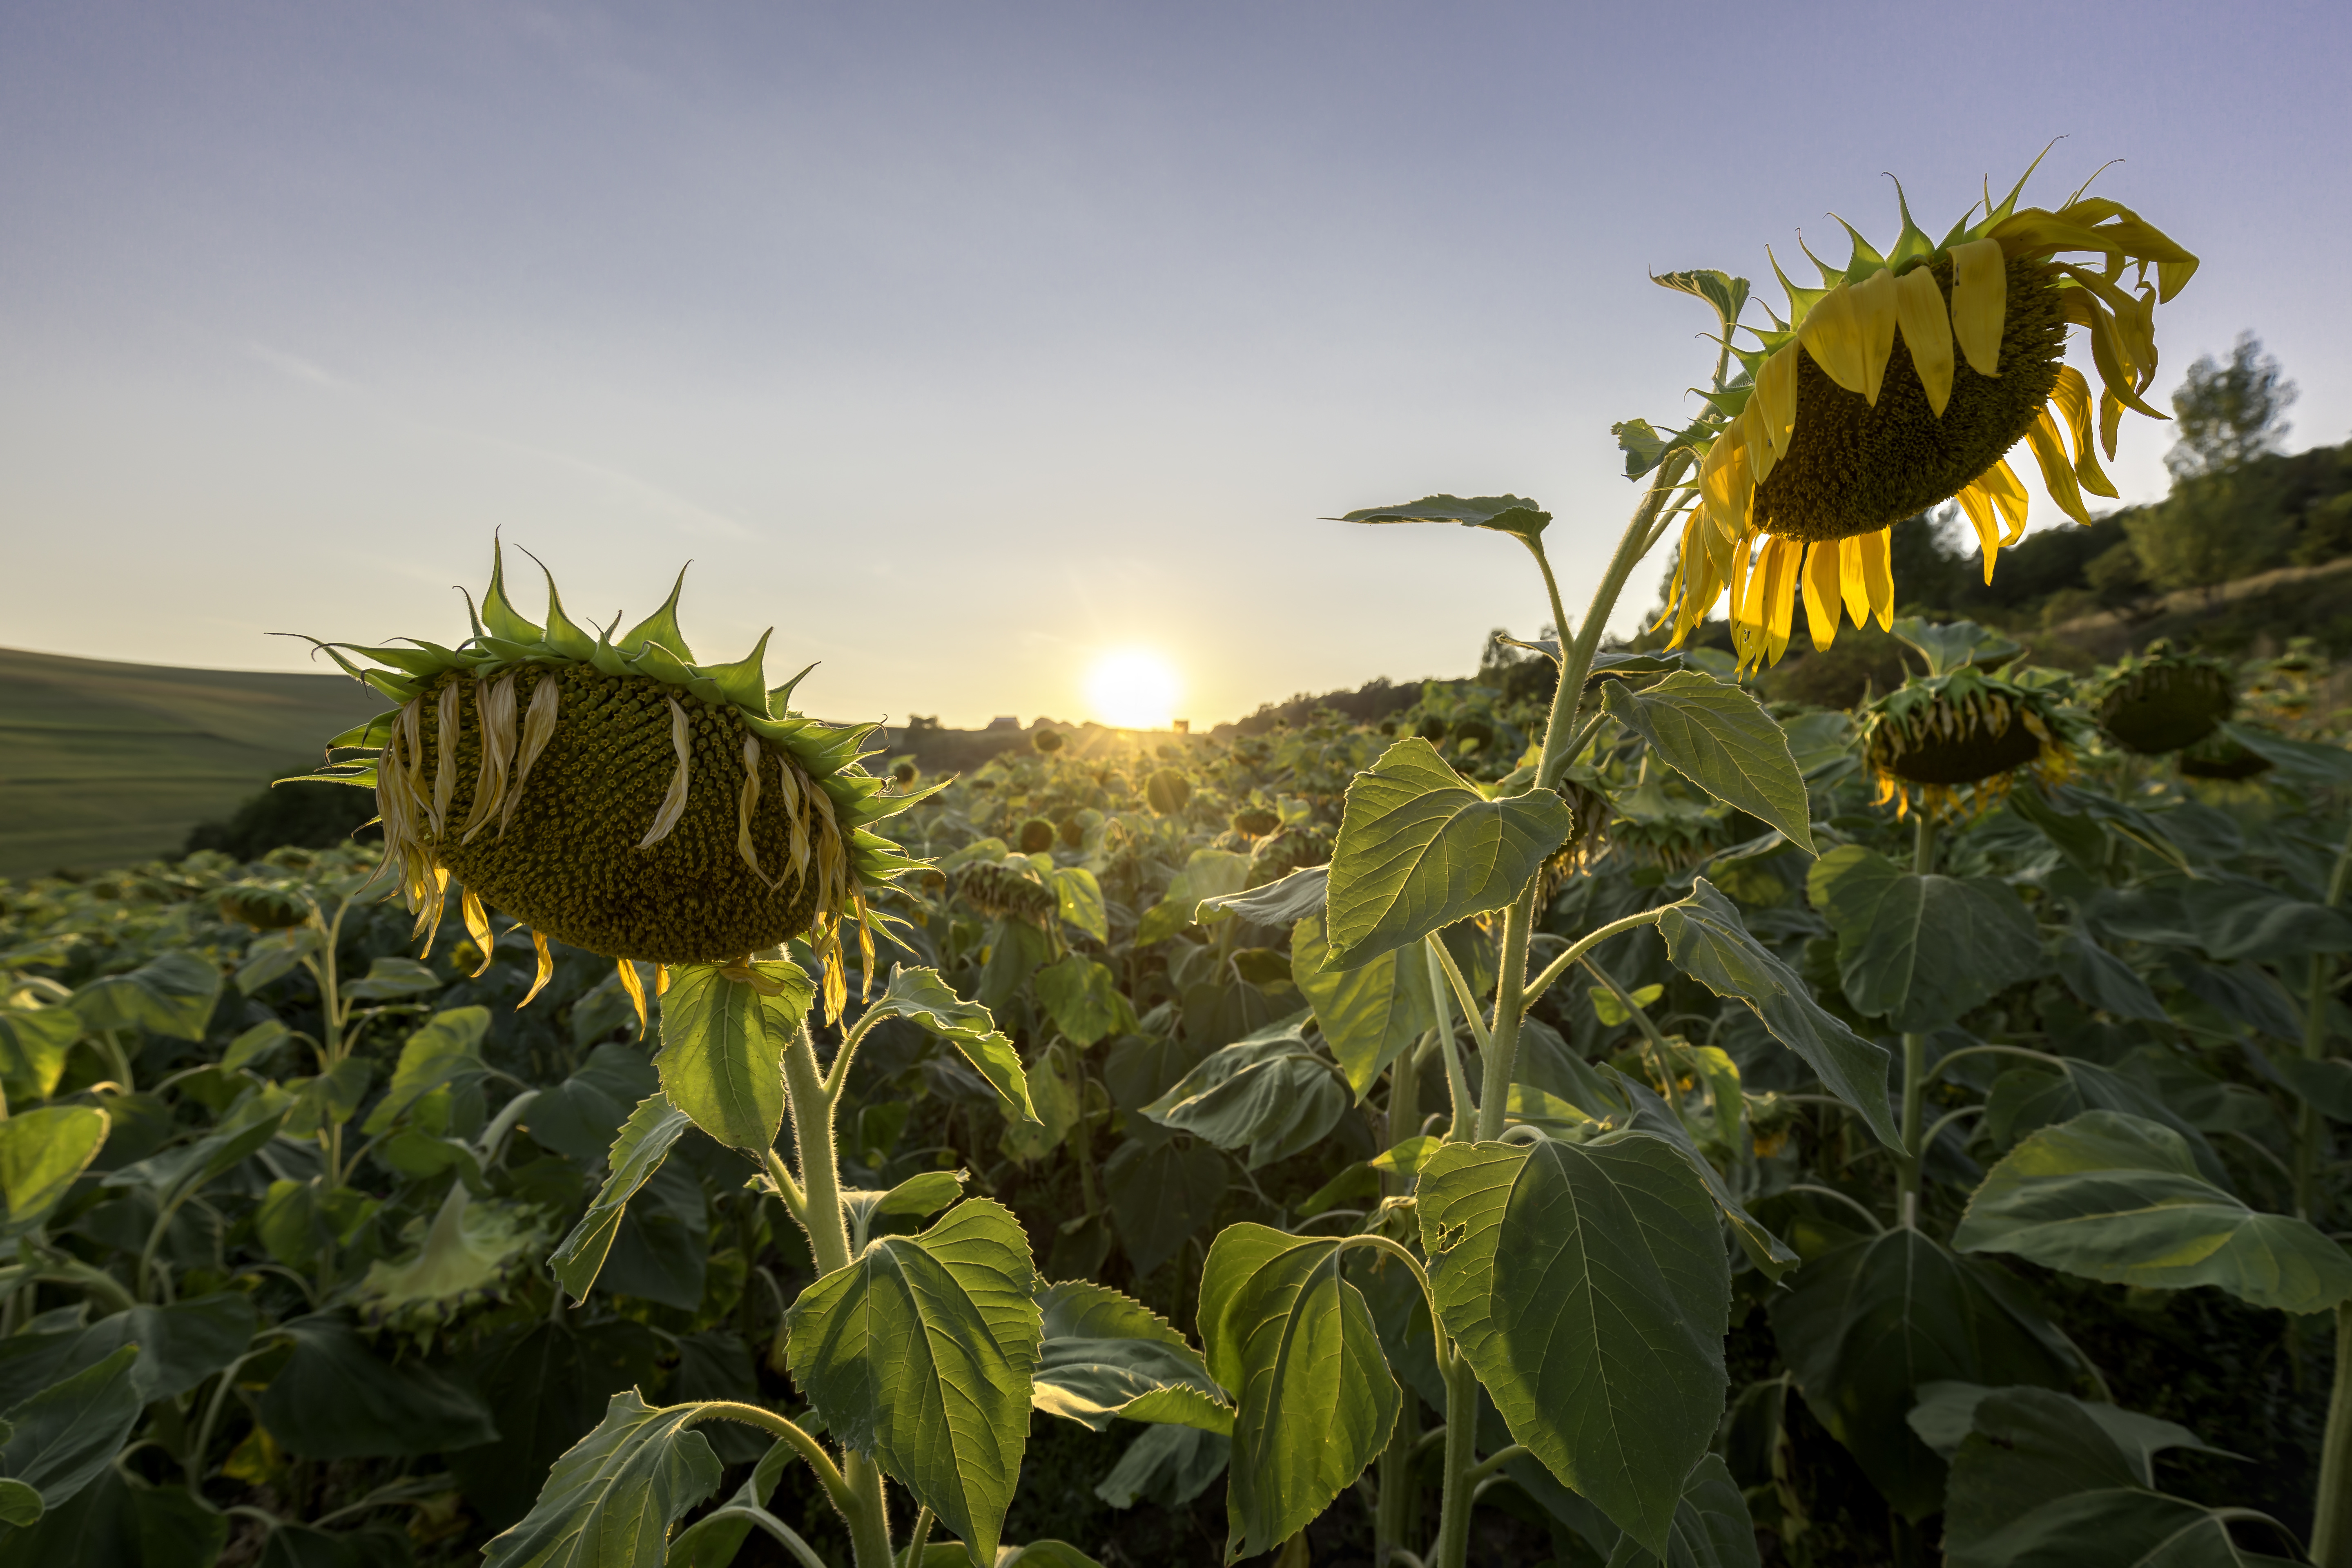 a field of sunflowers during sunset